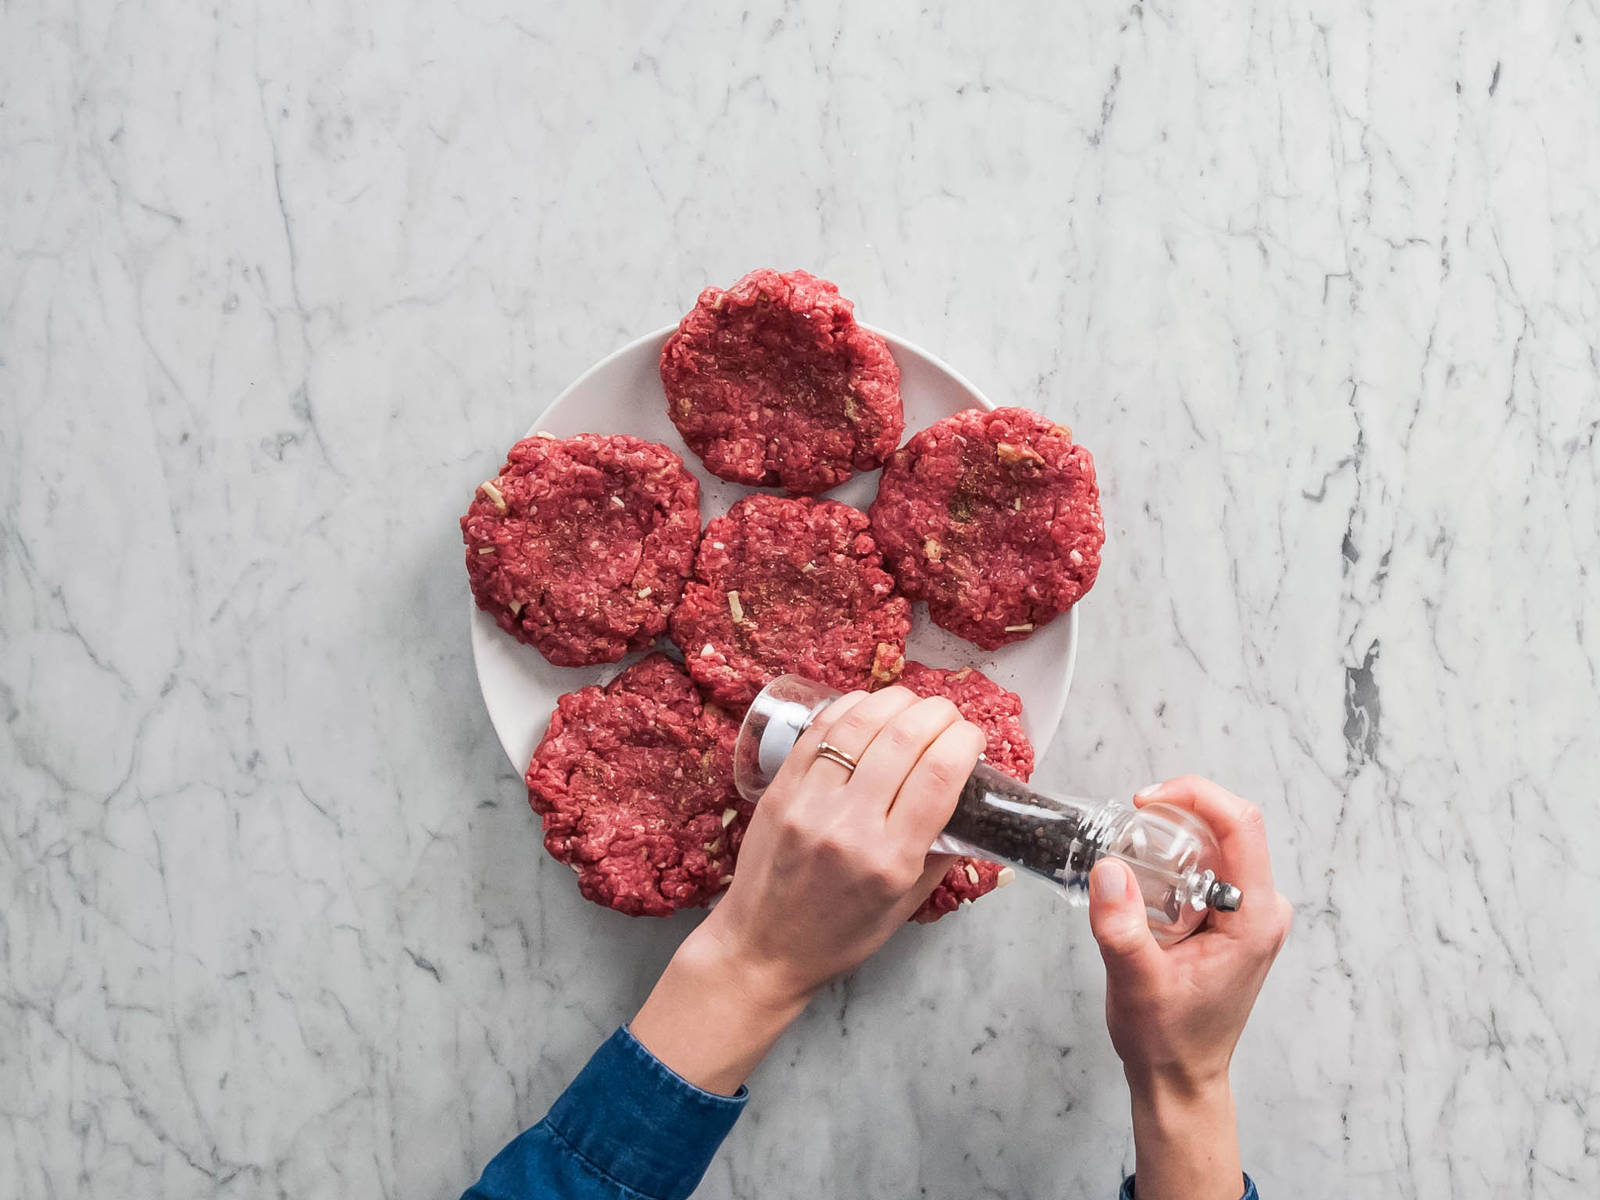 Preheat grill to medium-high. Mince garlic. Remove crusts from bread, dice, and mash with evaporated milk in a small bowl. Stir in Worcestershire sauce, salt, pepper, and garlic. Add bread mixture to beef with fork or hands, gently mixing together. Divide meat into portions and gently form into patties. Using thumb or fingertips, press shallow indentations in centers of patties. Season both sides of patties with salt and pepper, if desired.